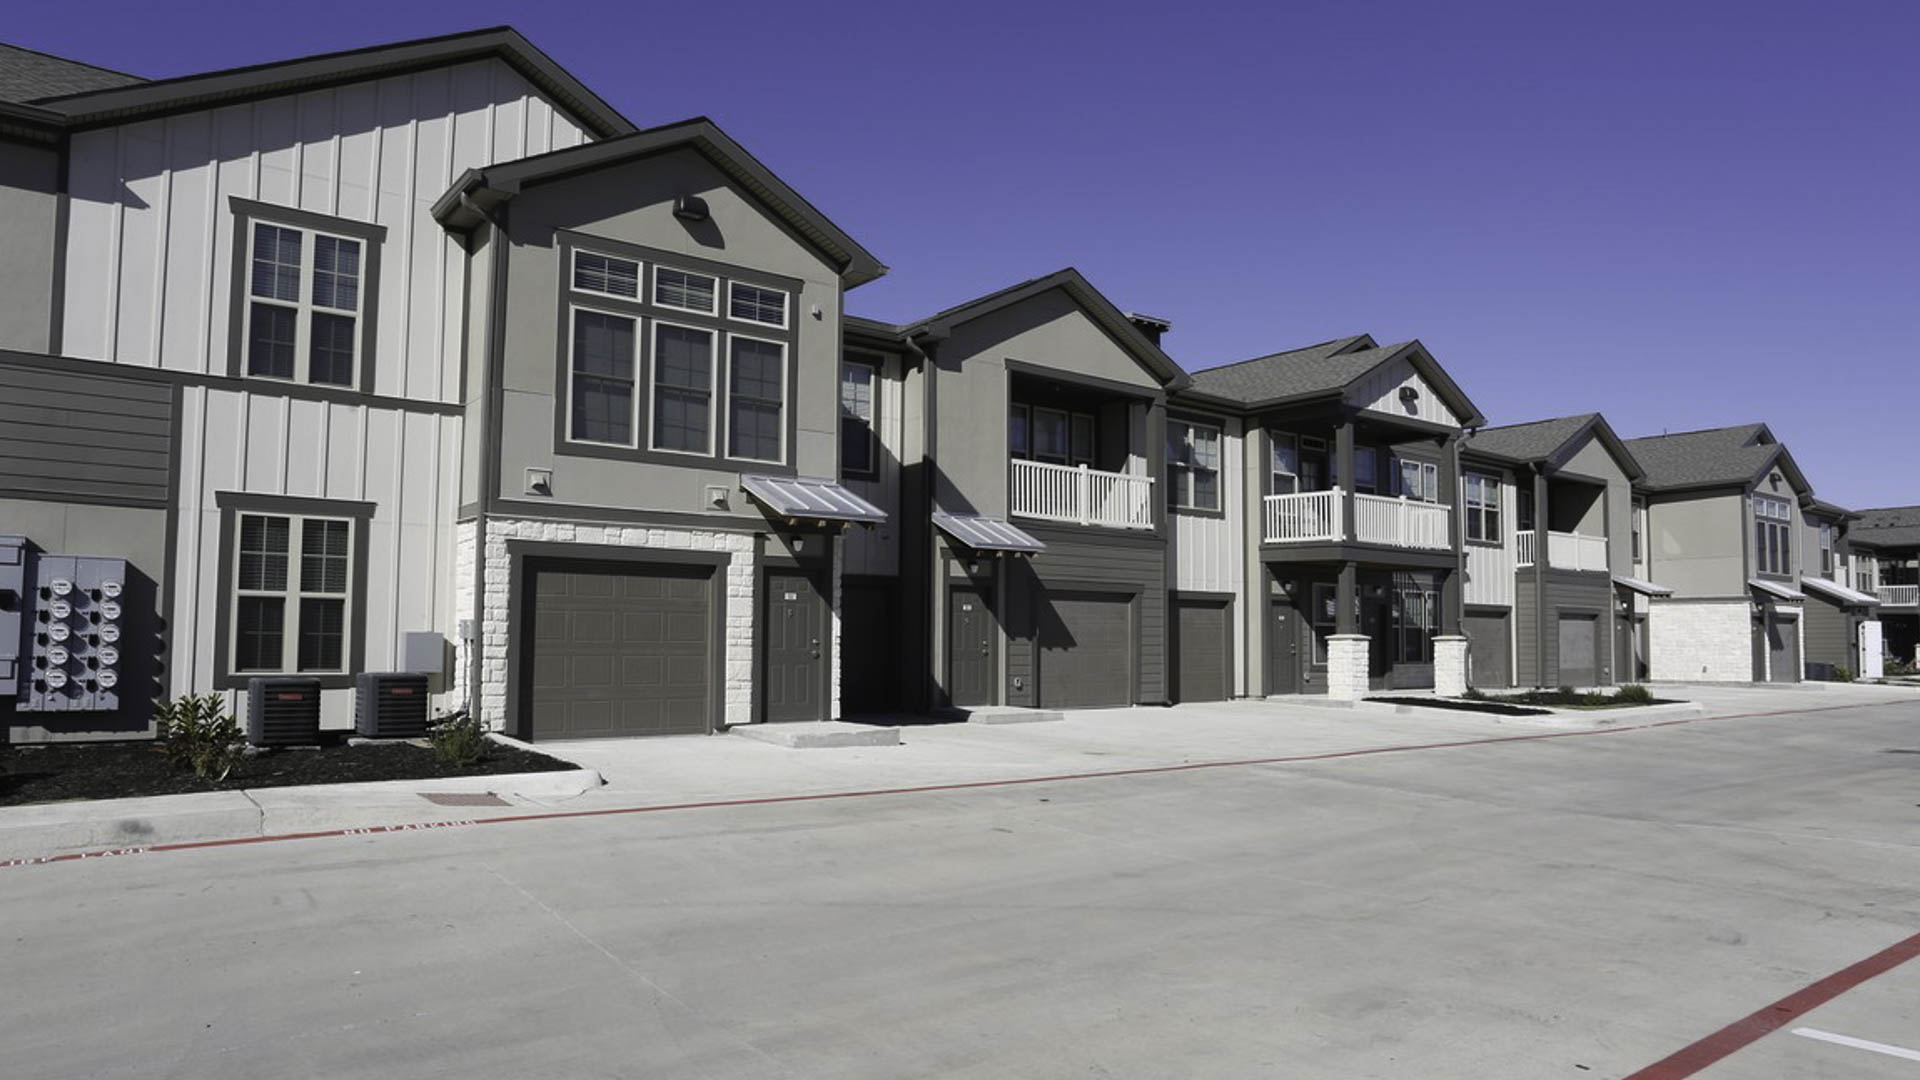 Springs at Cottonwood Creek apartment exterior with attached garages